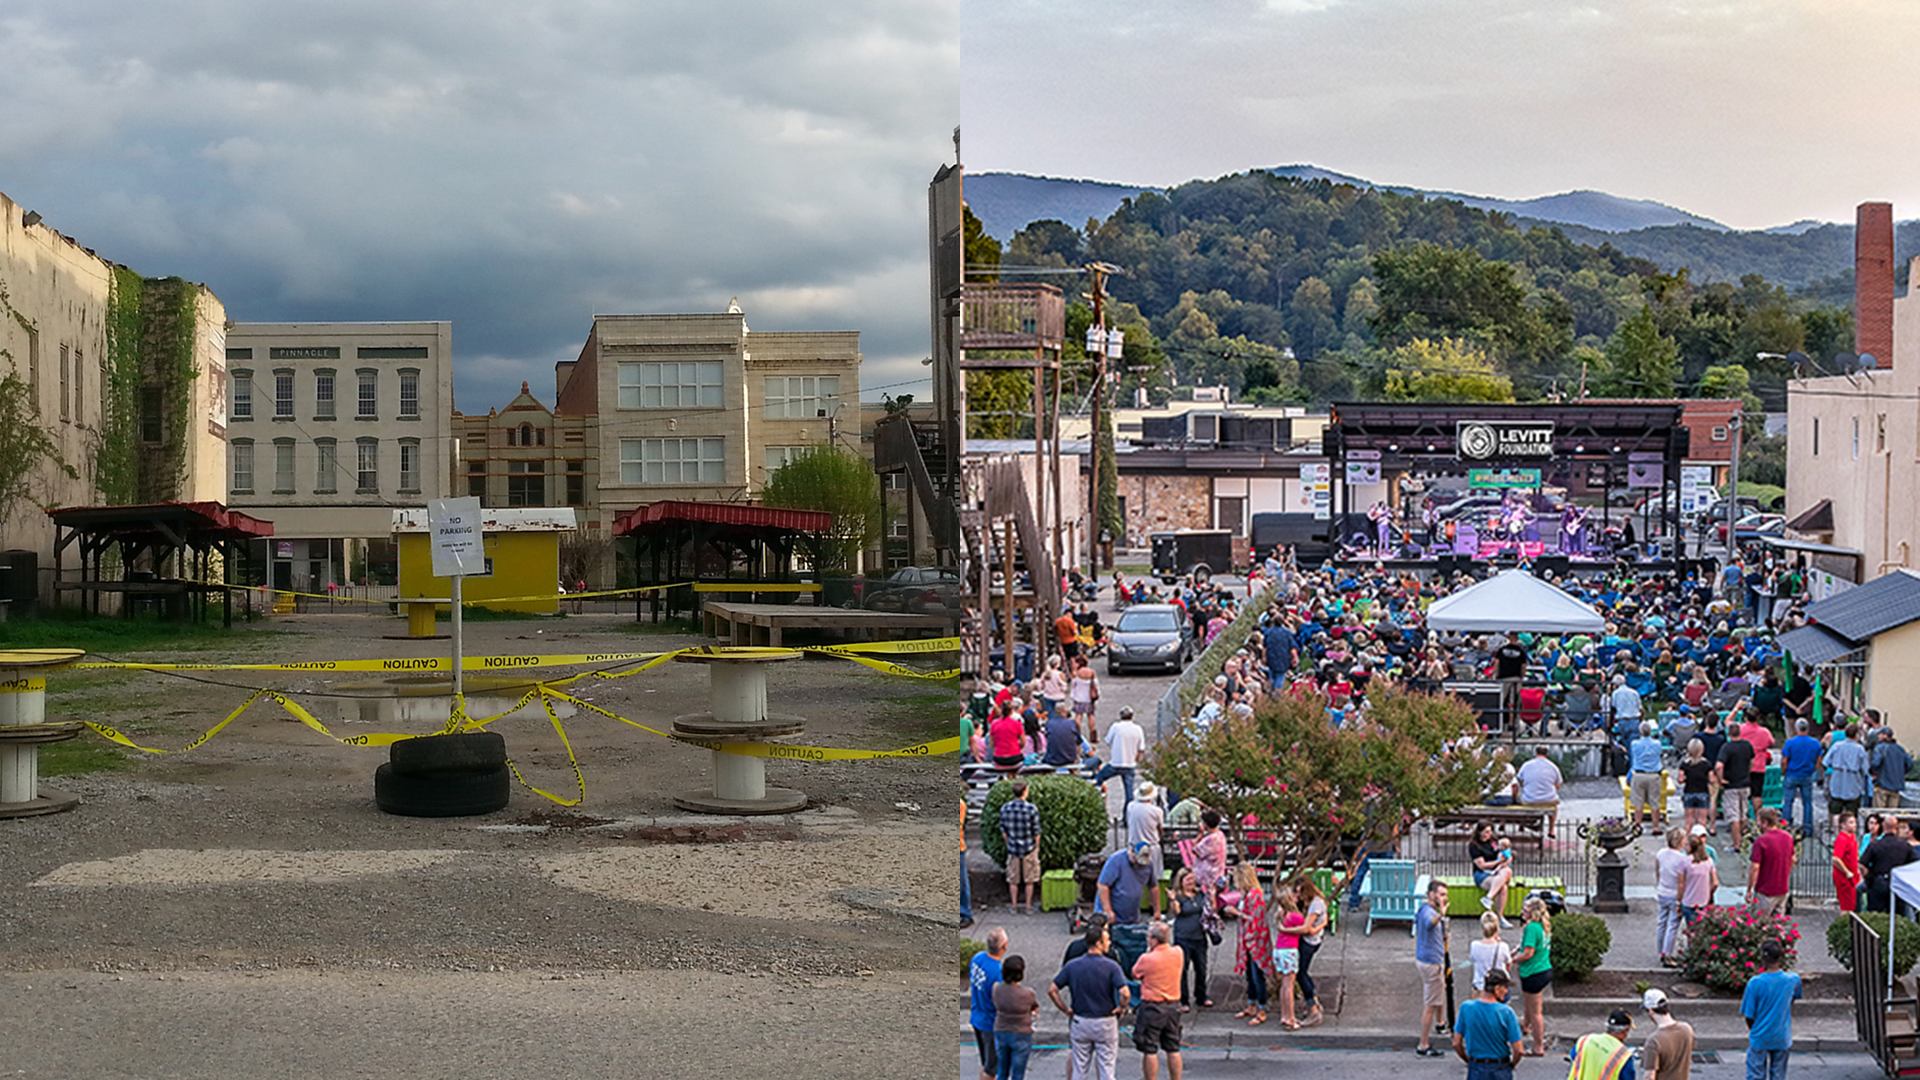 Before and after photos of the public space home to Levitt AMP Middlesboro concerts